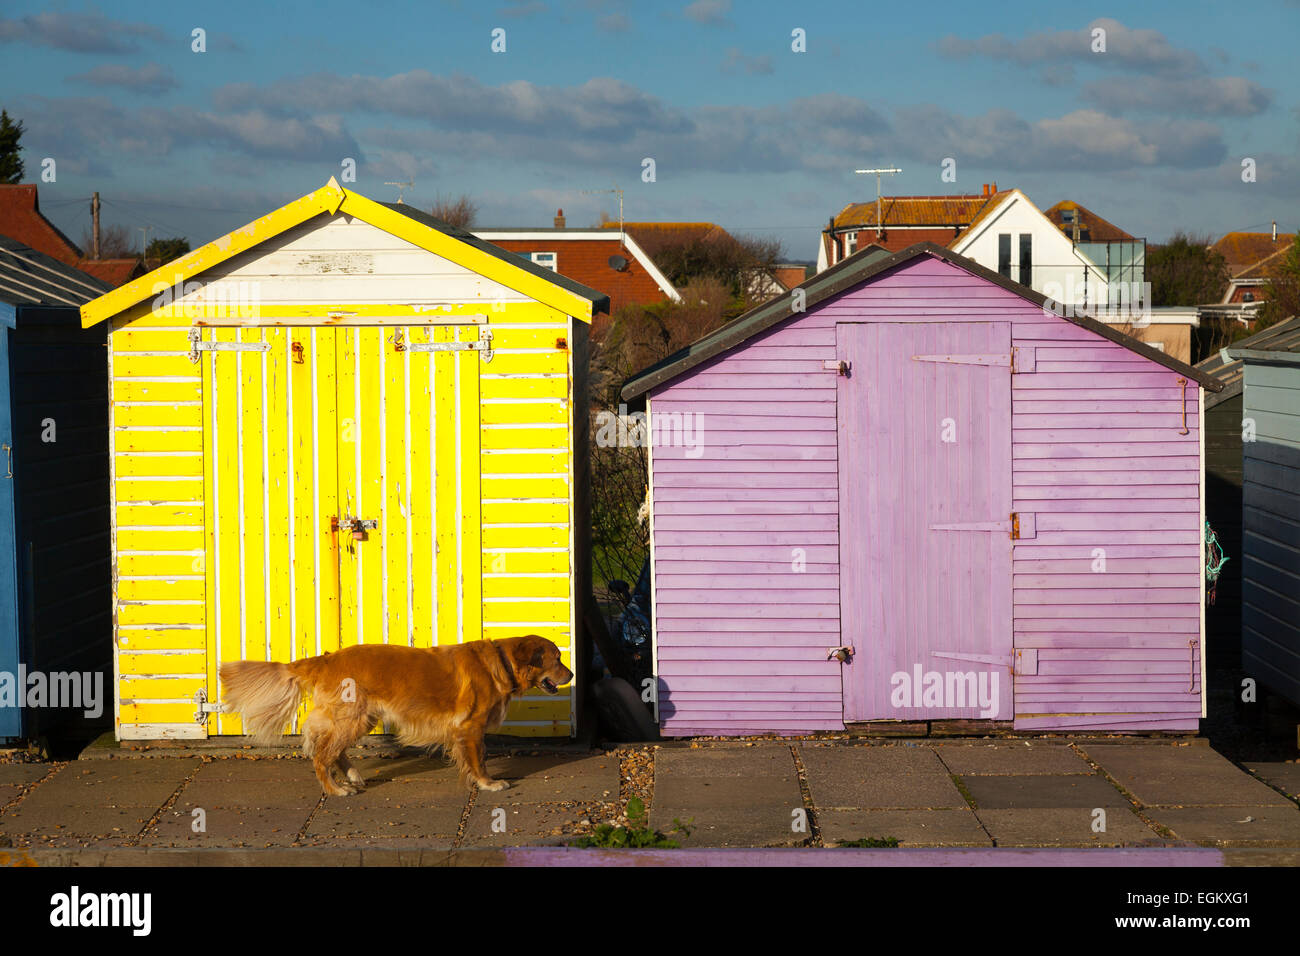 Golden retriever dog walking past colourful old beach huts Stock Photo